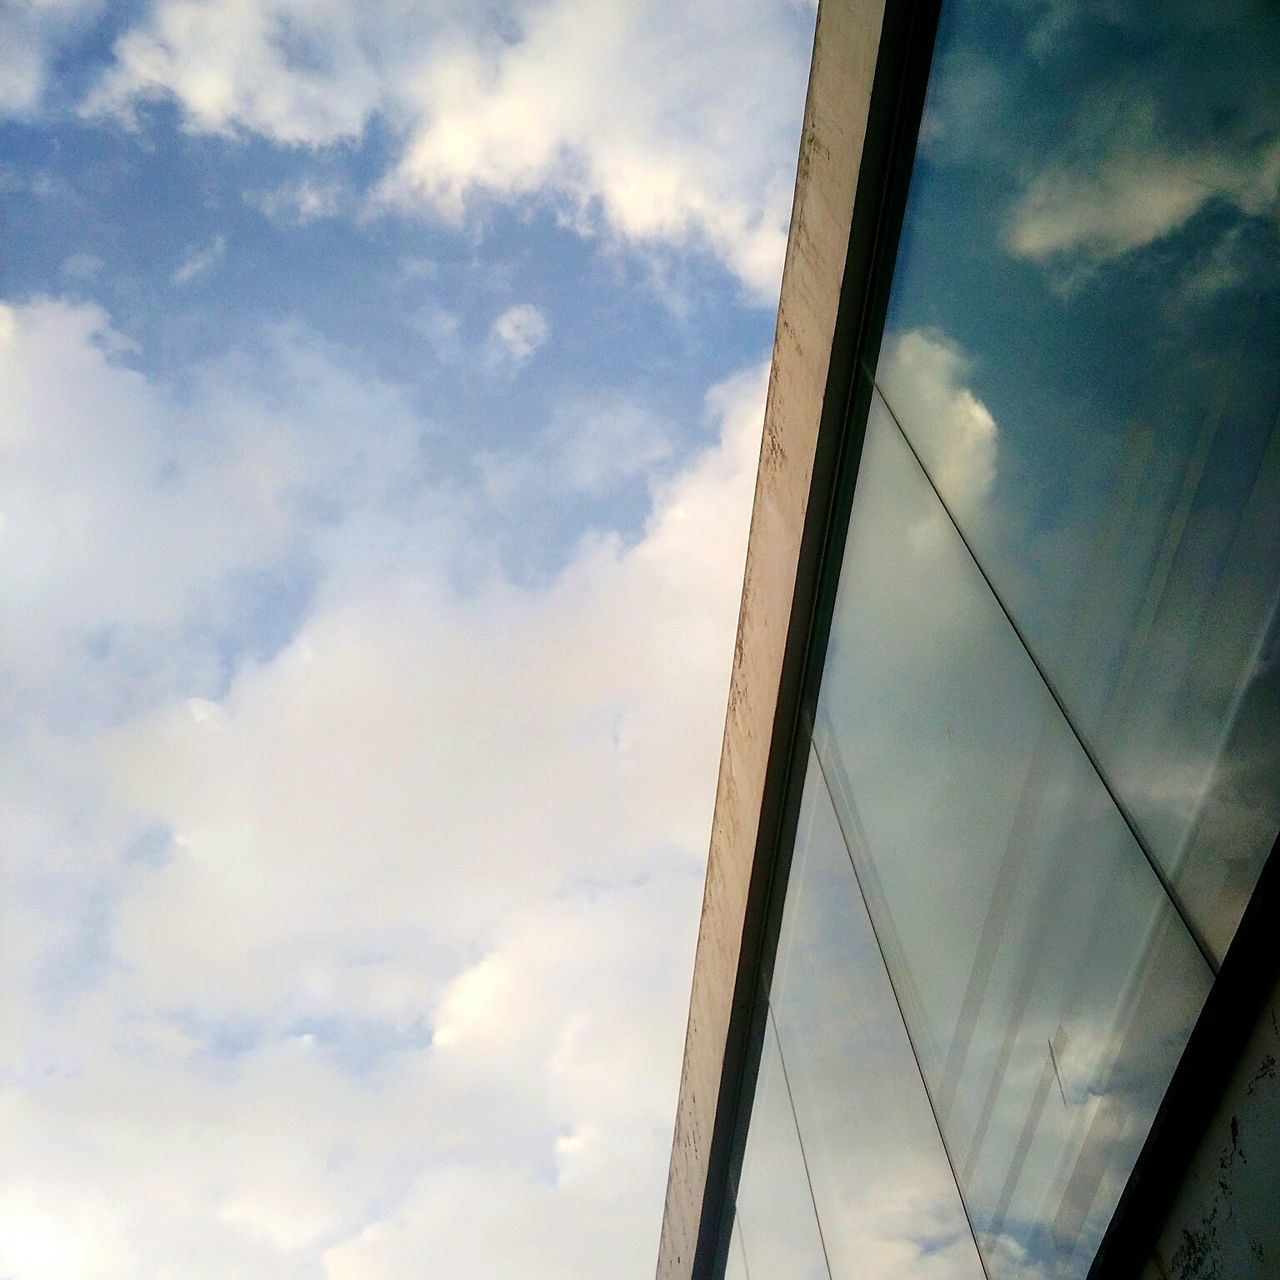 Cloud - Sky No People Outdoors Architecture Building Exterior Windowreflections